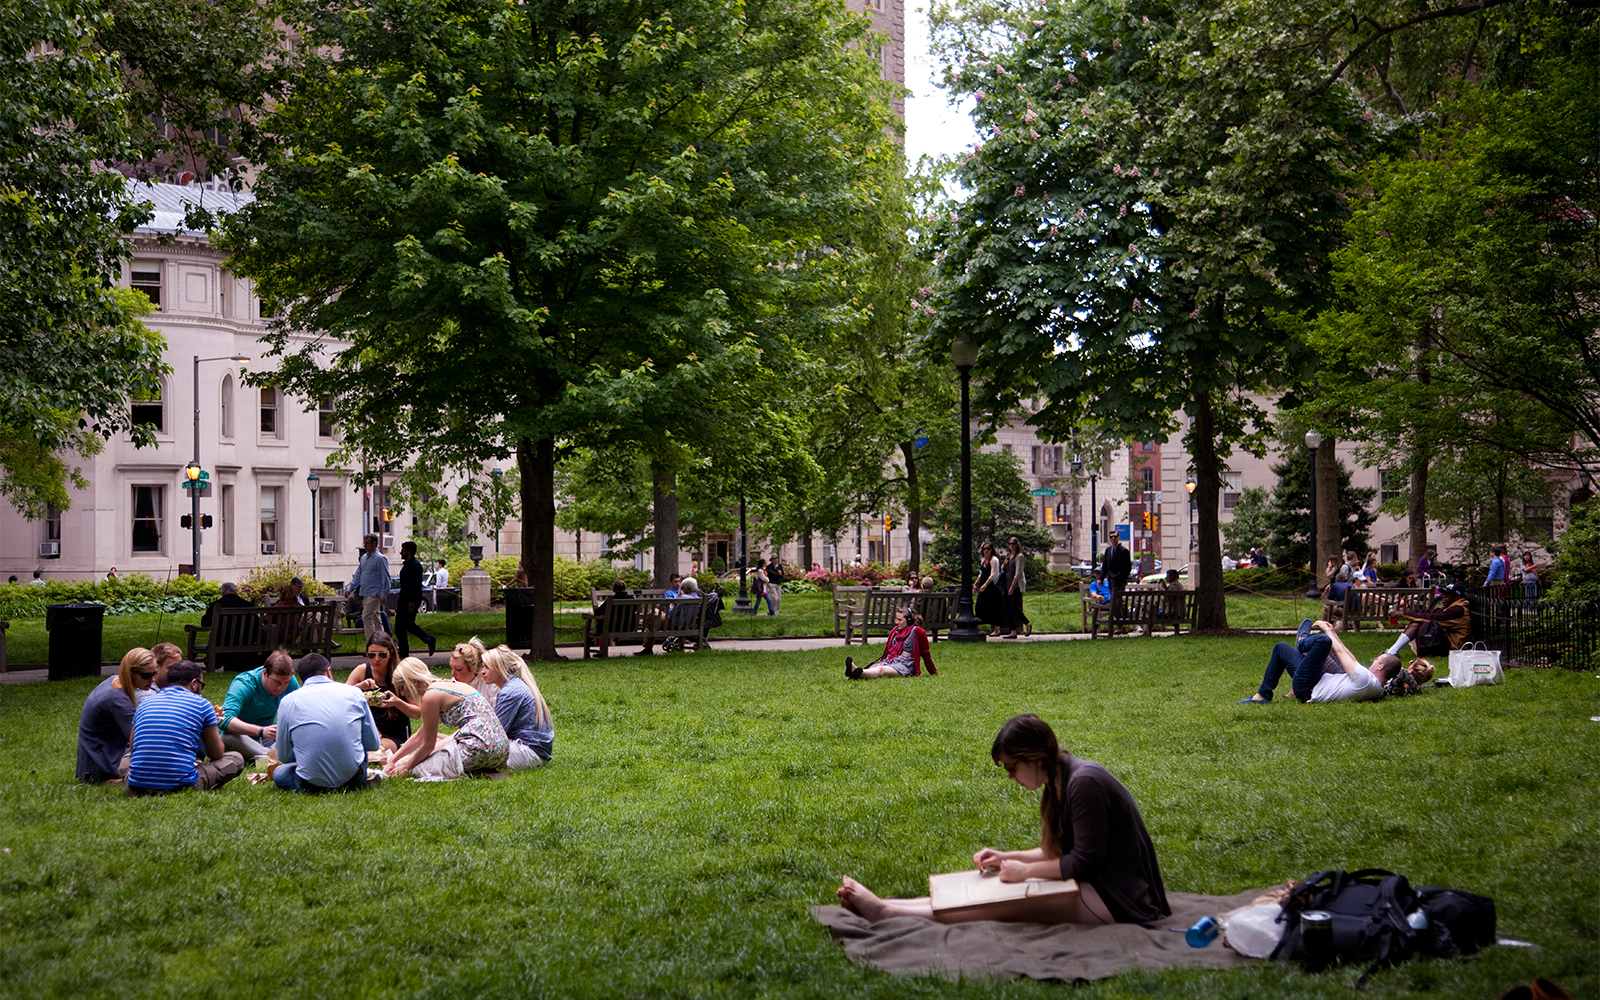 America's Best Cities for Picnics: No. 14 Philadelphia